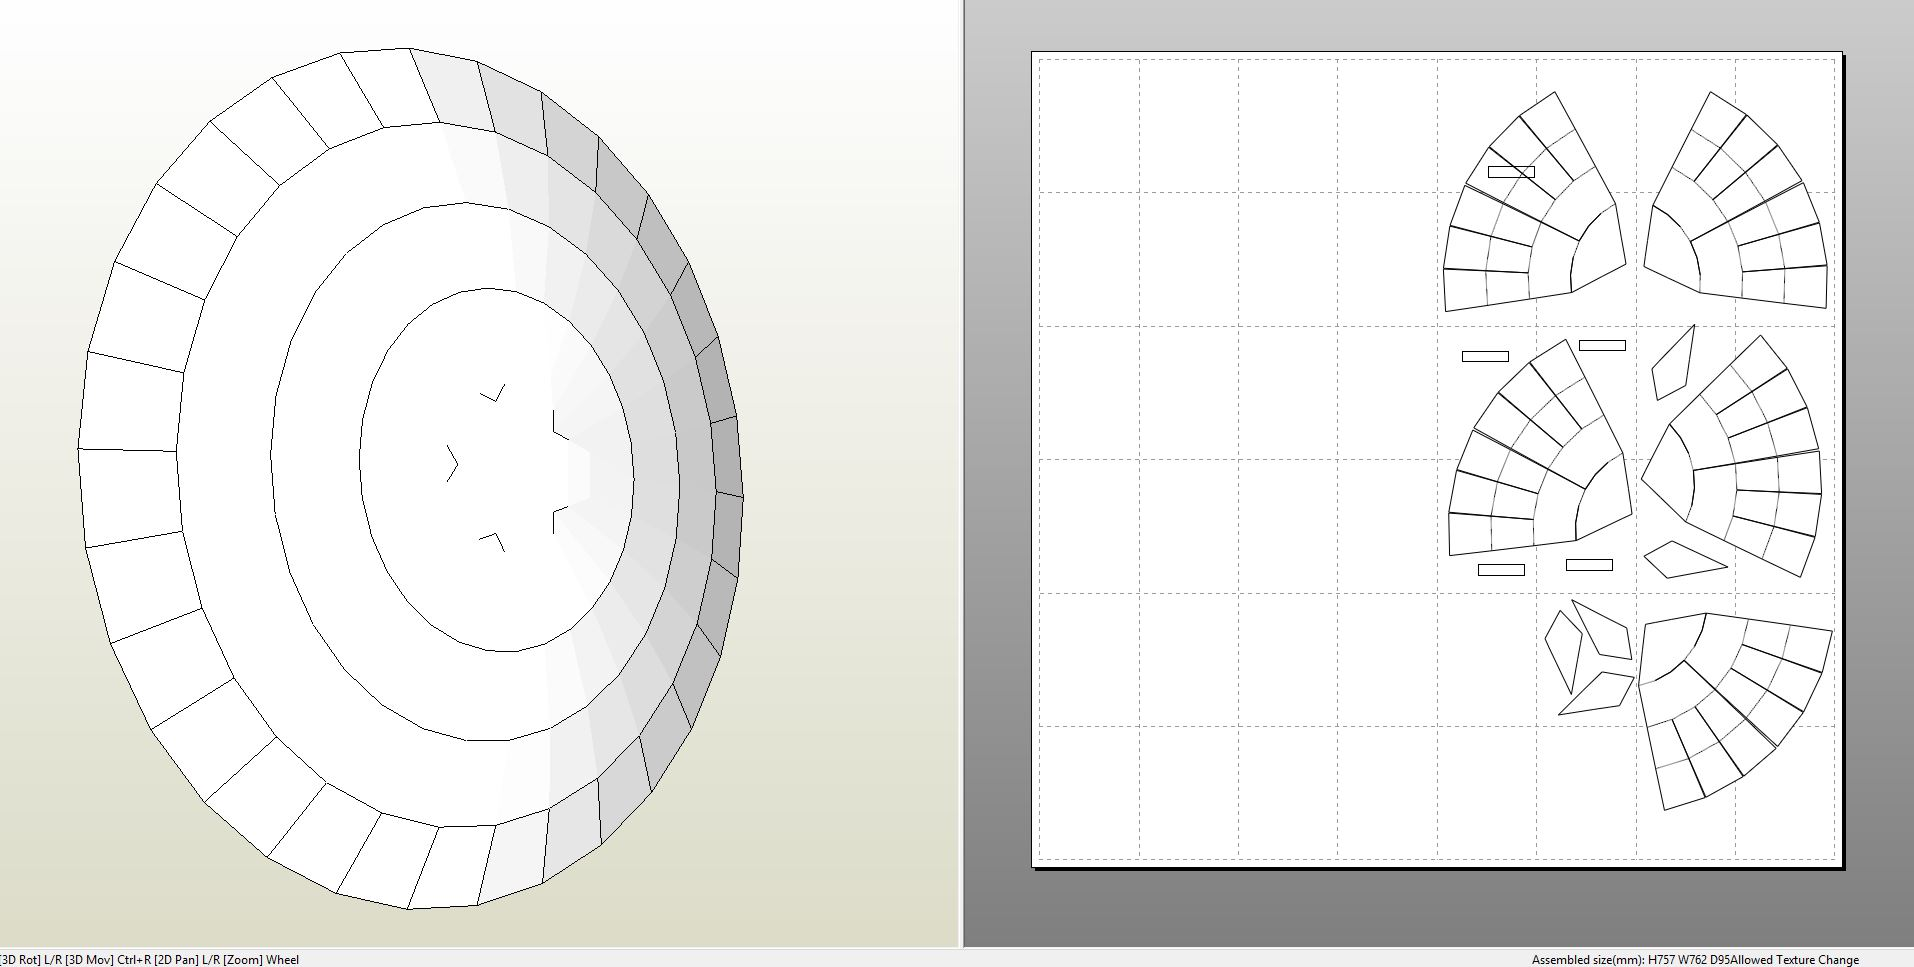 Foamcraft pdo file template for captain america shield foam captainamericashield pronofoot35fo Image collections